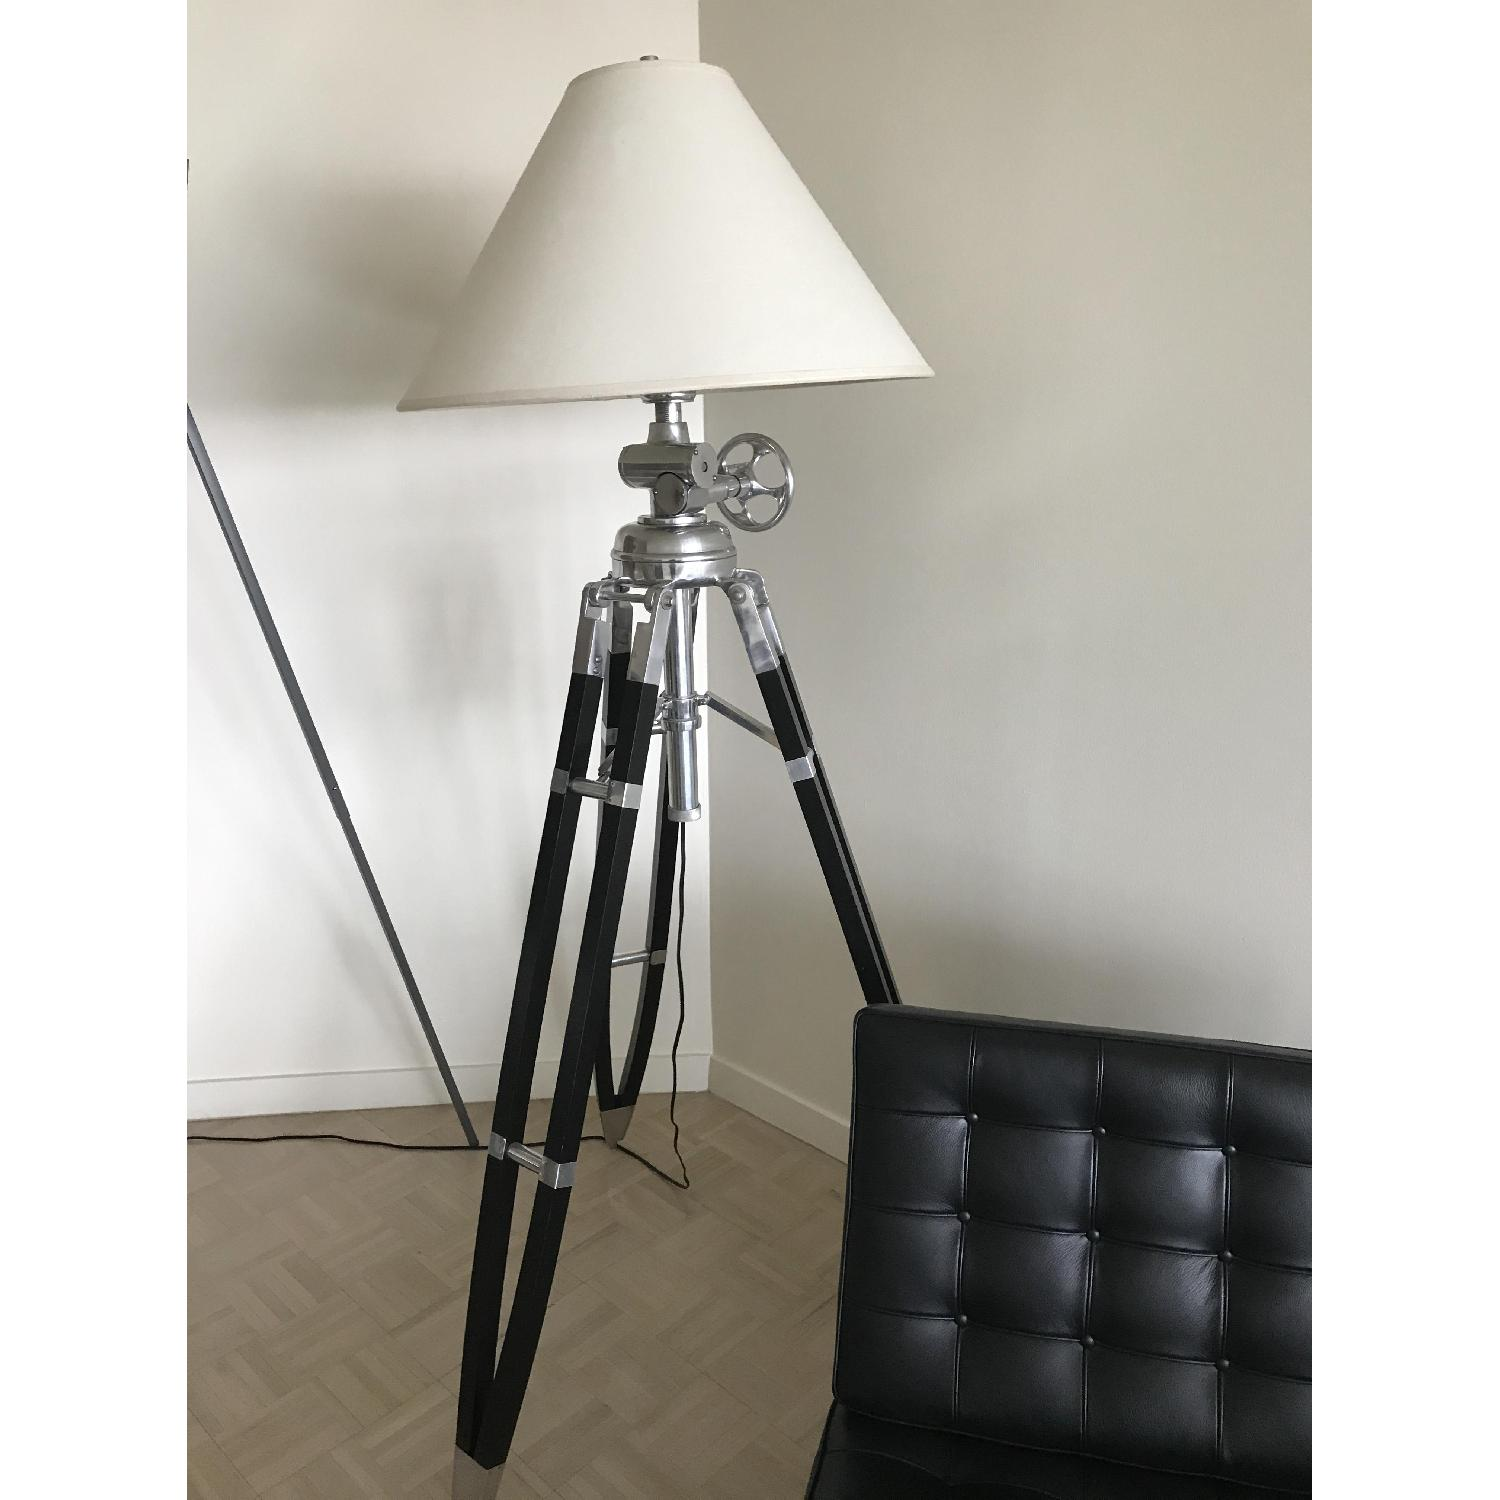 Restoration hardware royal marine tripod floor lamp aptdeco for When is restoration hardware lighting sale